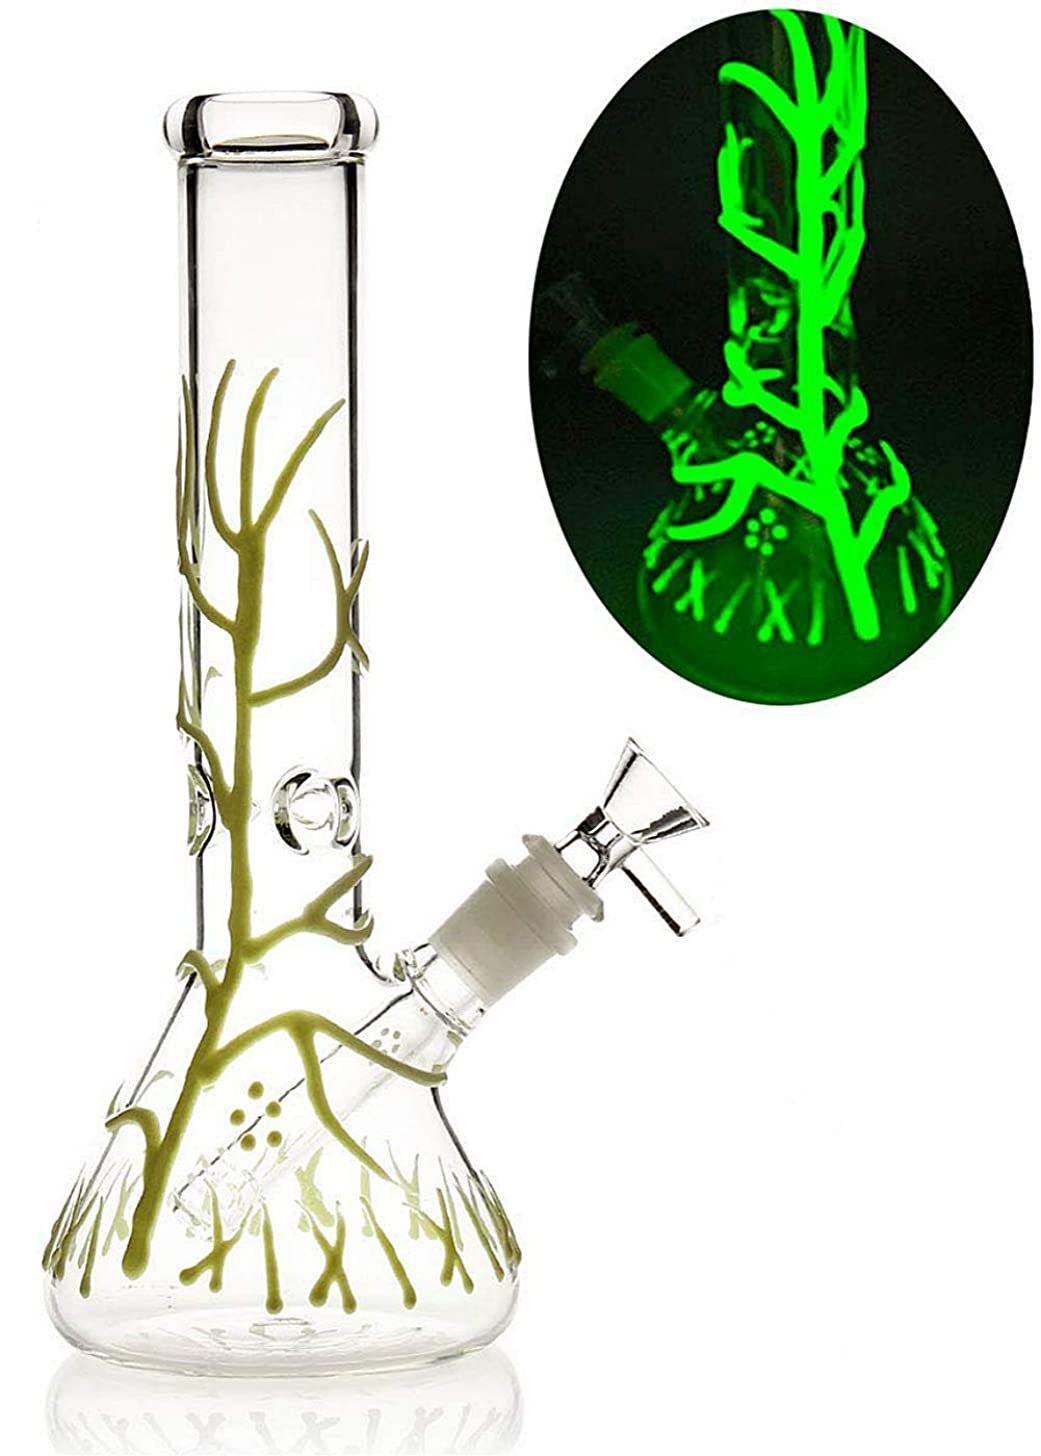 SEA GIANT Hand Made Decorate 10 Inches Glass Crafts Tree Vines Glow in The Dark